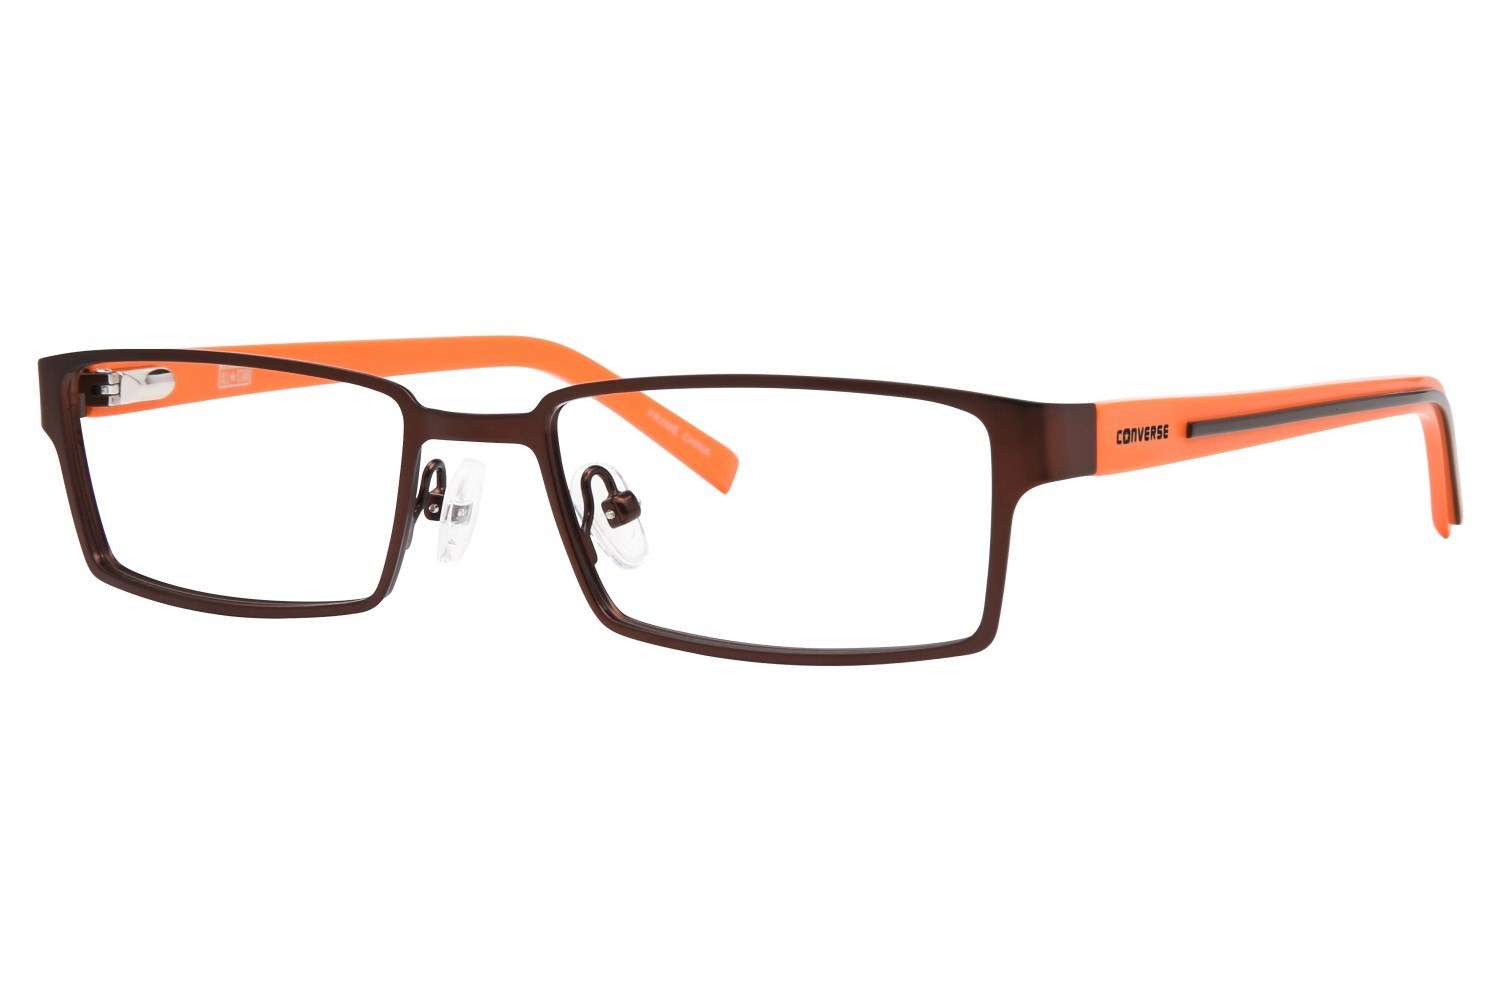 converse-converse-k010-prescription-eyeglasses